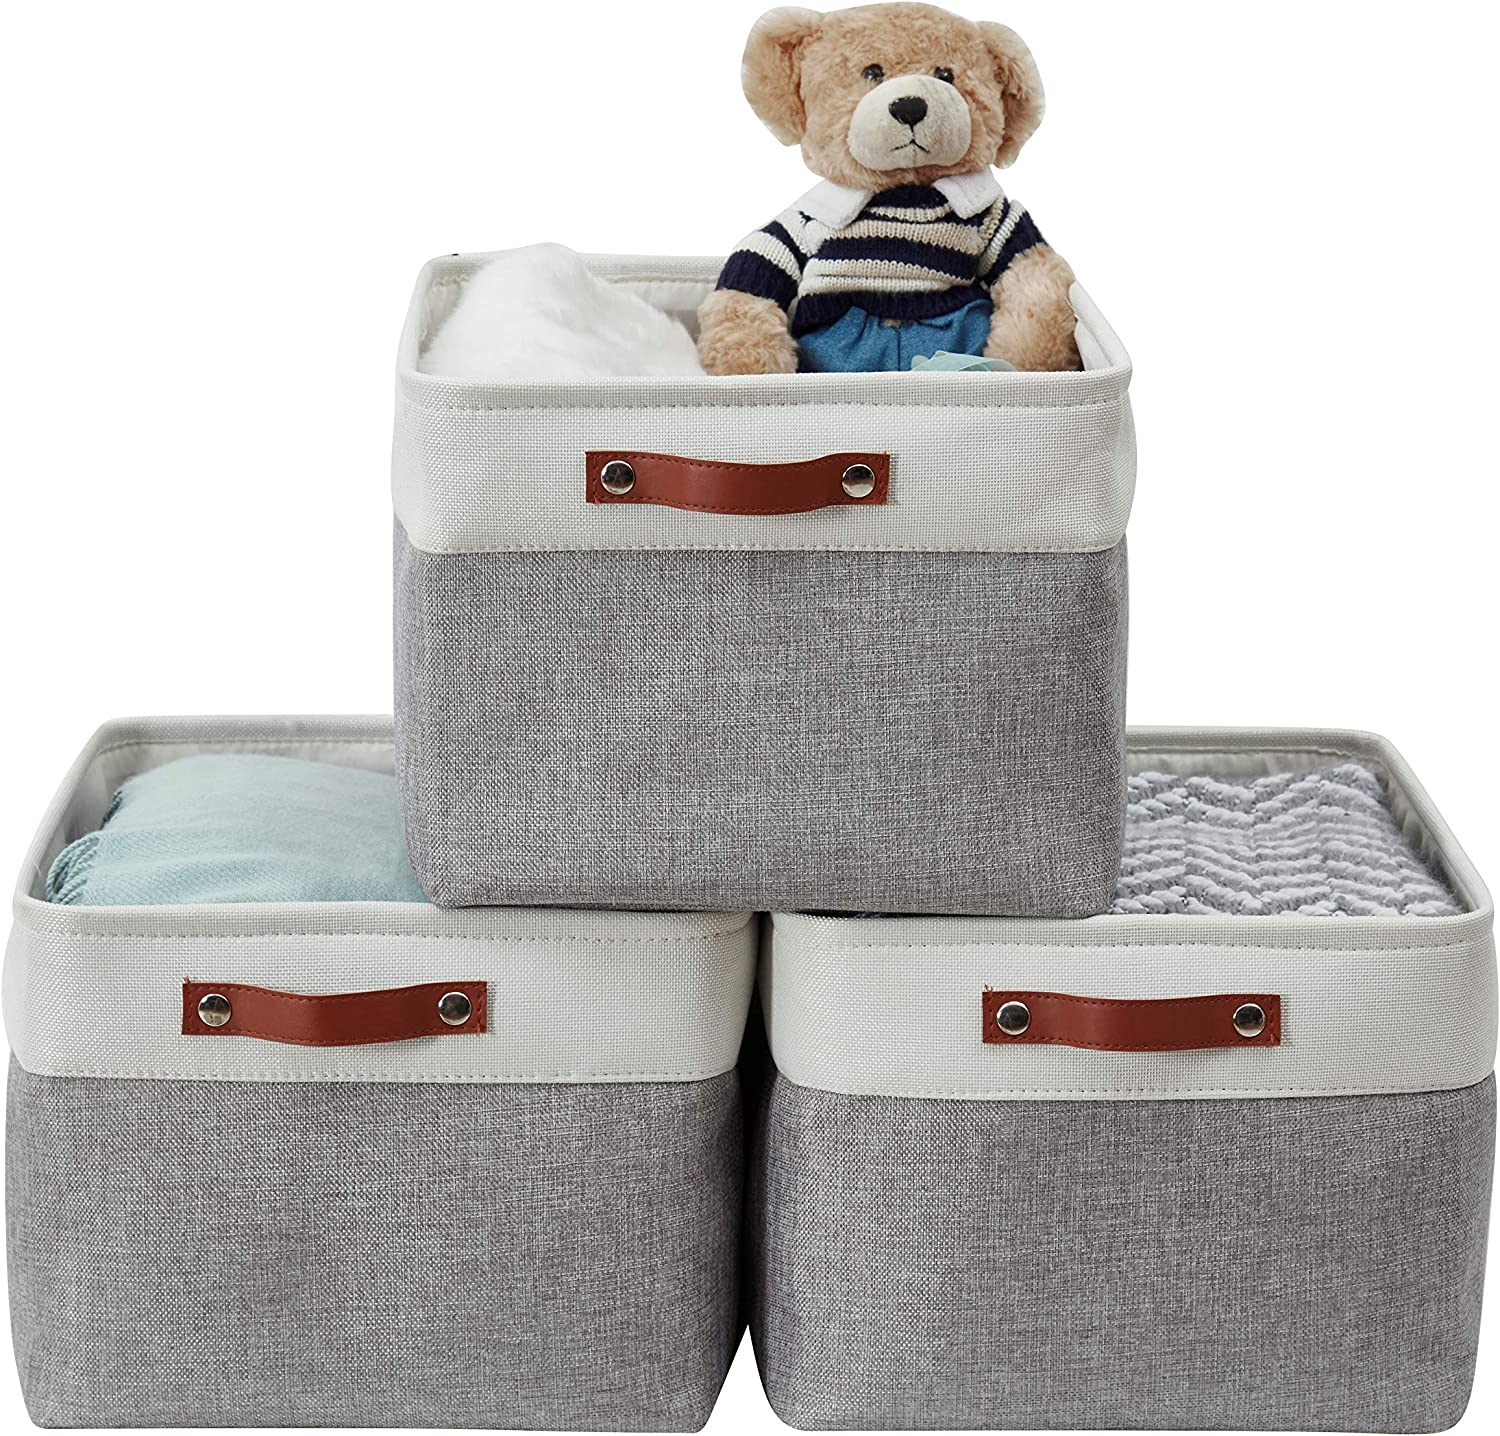 DECOMOMO Foldable Storage Bin [3-Pack] Collapsible Sturdy Cationic Fabric Storage Basket Cube W/Handles for Organizing Shelf Nursery Home Closet (Grey and White, Extra Large - 15.8 x 12.5 x 10)